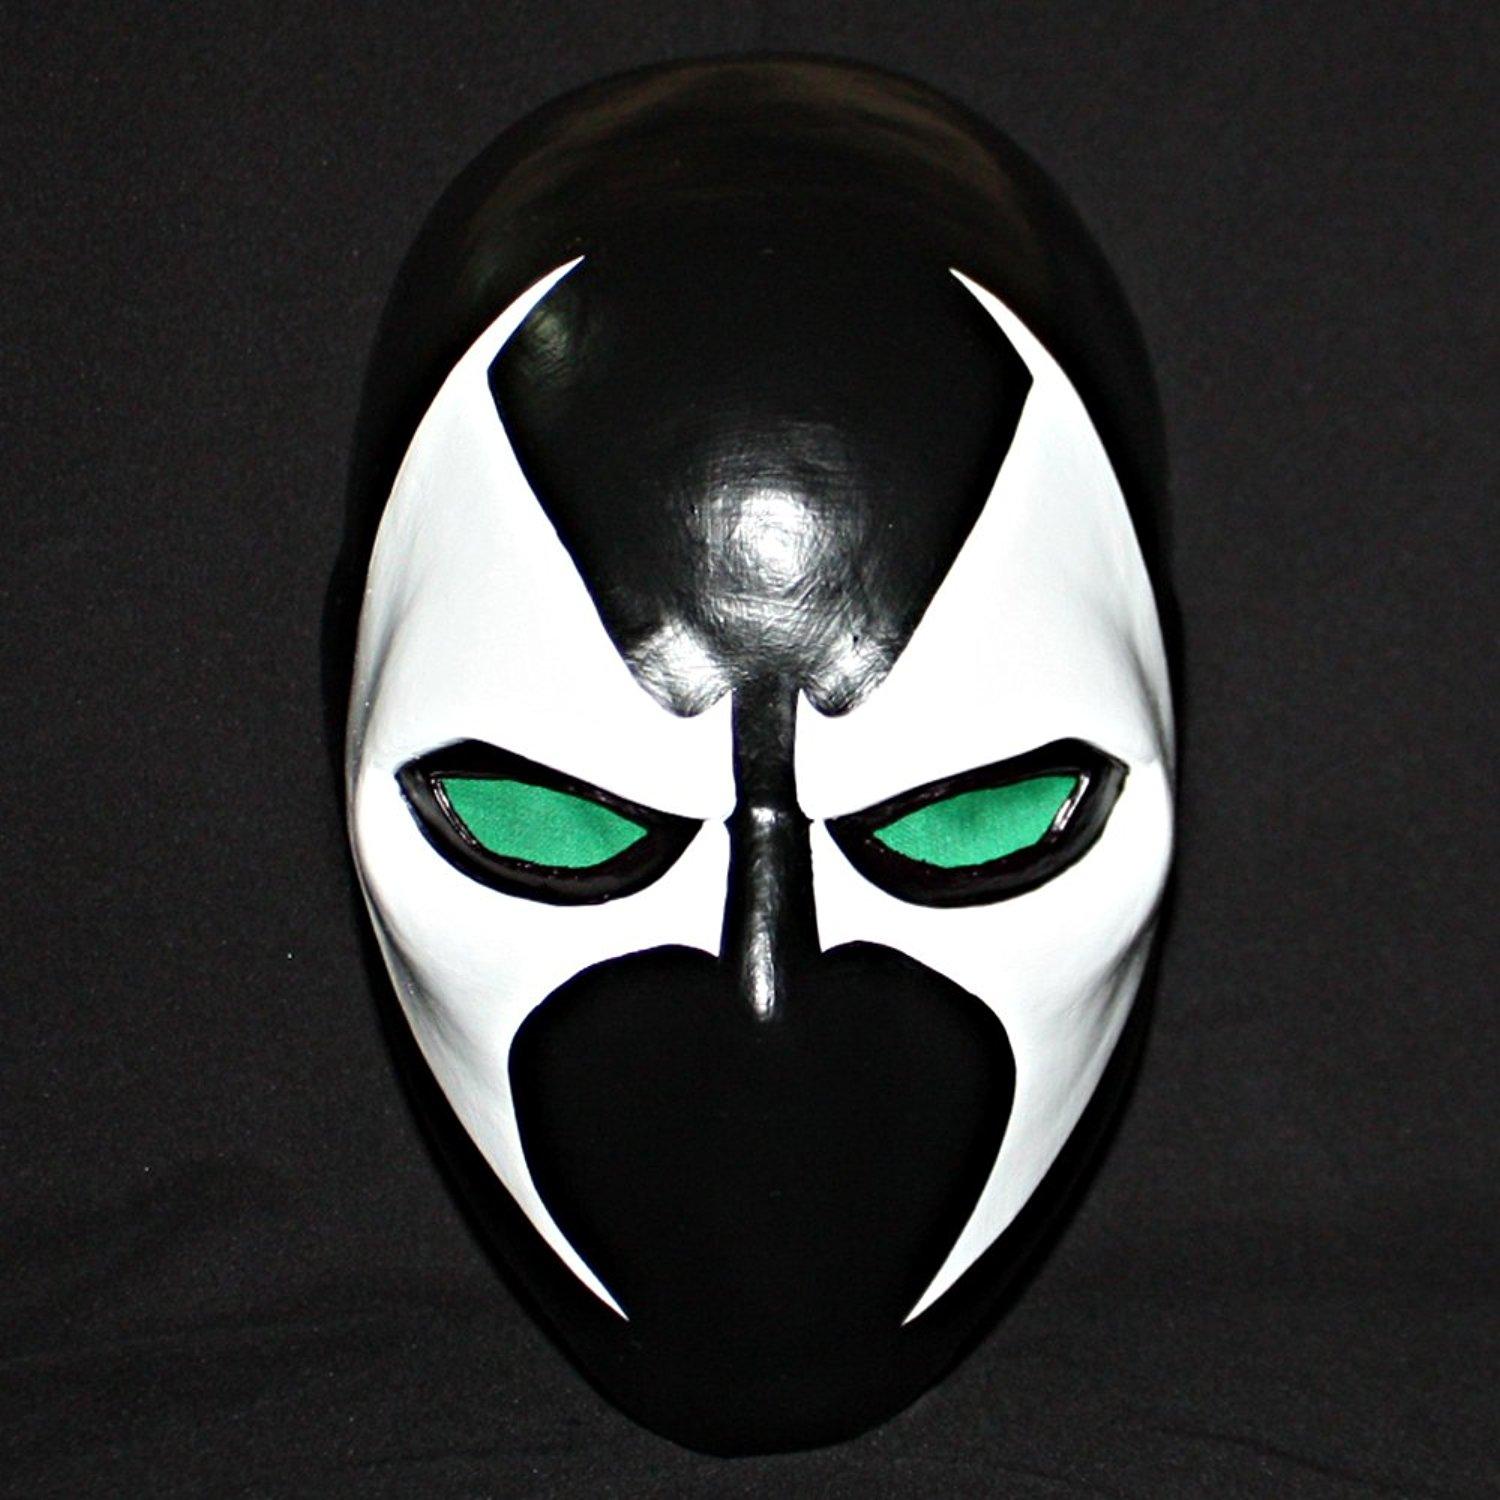 1:1 Custom Halloween Costume Cosplay Prop Latex Spawn Mask LA23